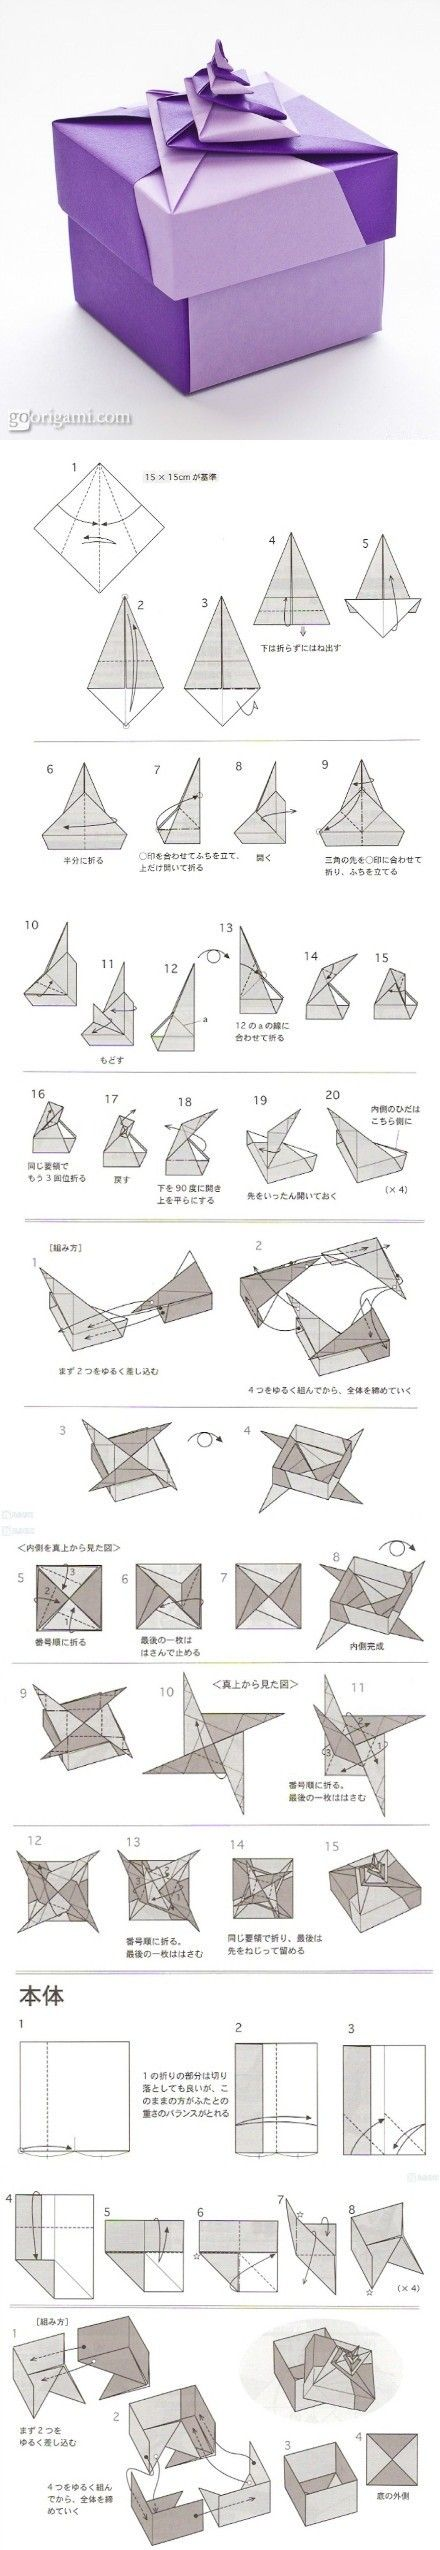 origami spiral top box by tomoko fuse diagrams in chinese